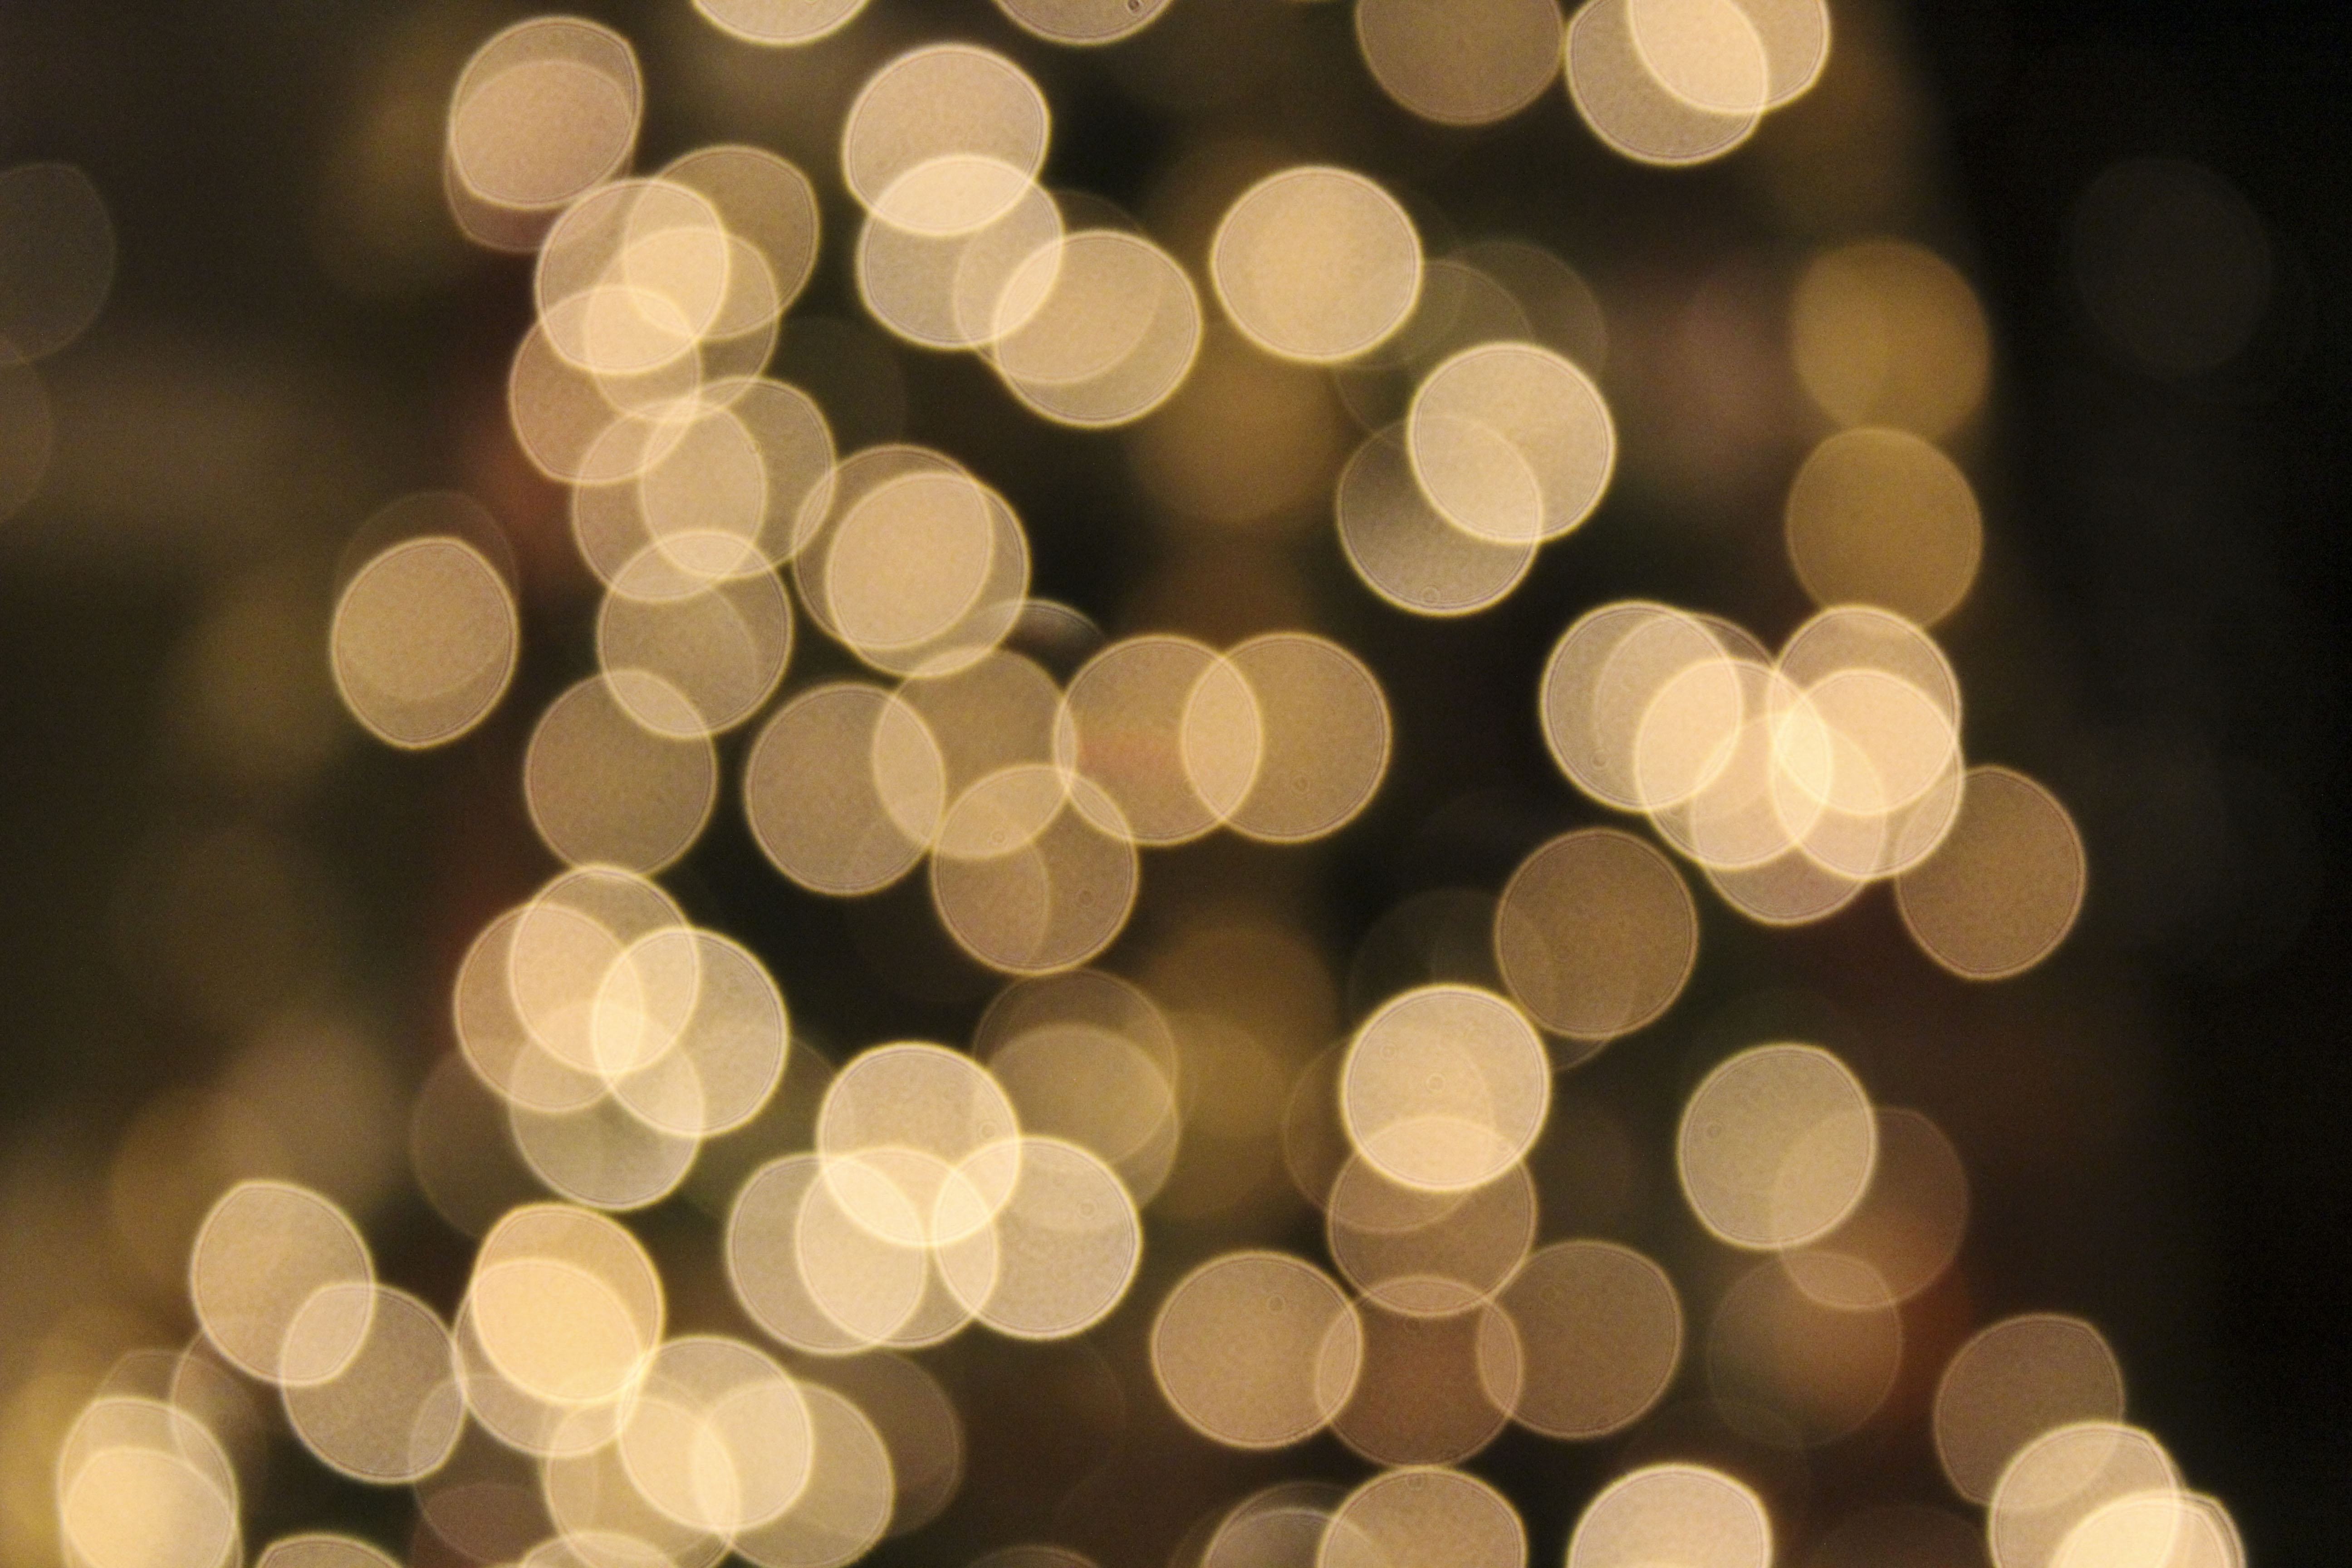 Christmas Lights Overlay Png.Bokeh Blurred Christmas Lights Medium By Pureoptic On